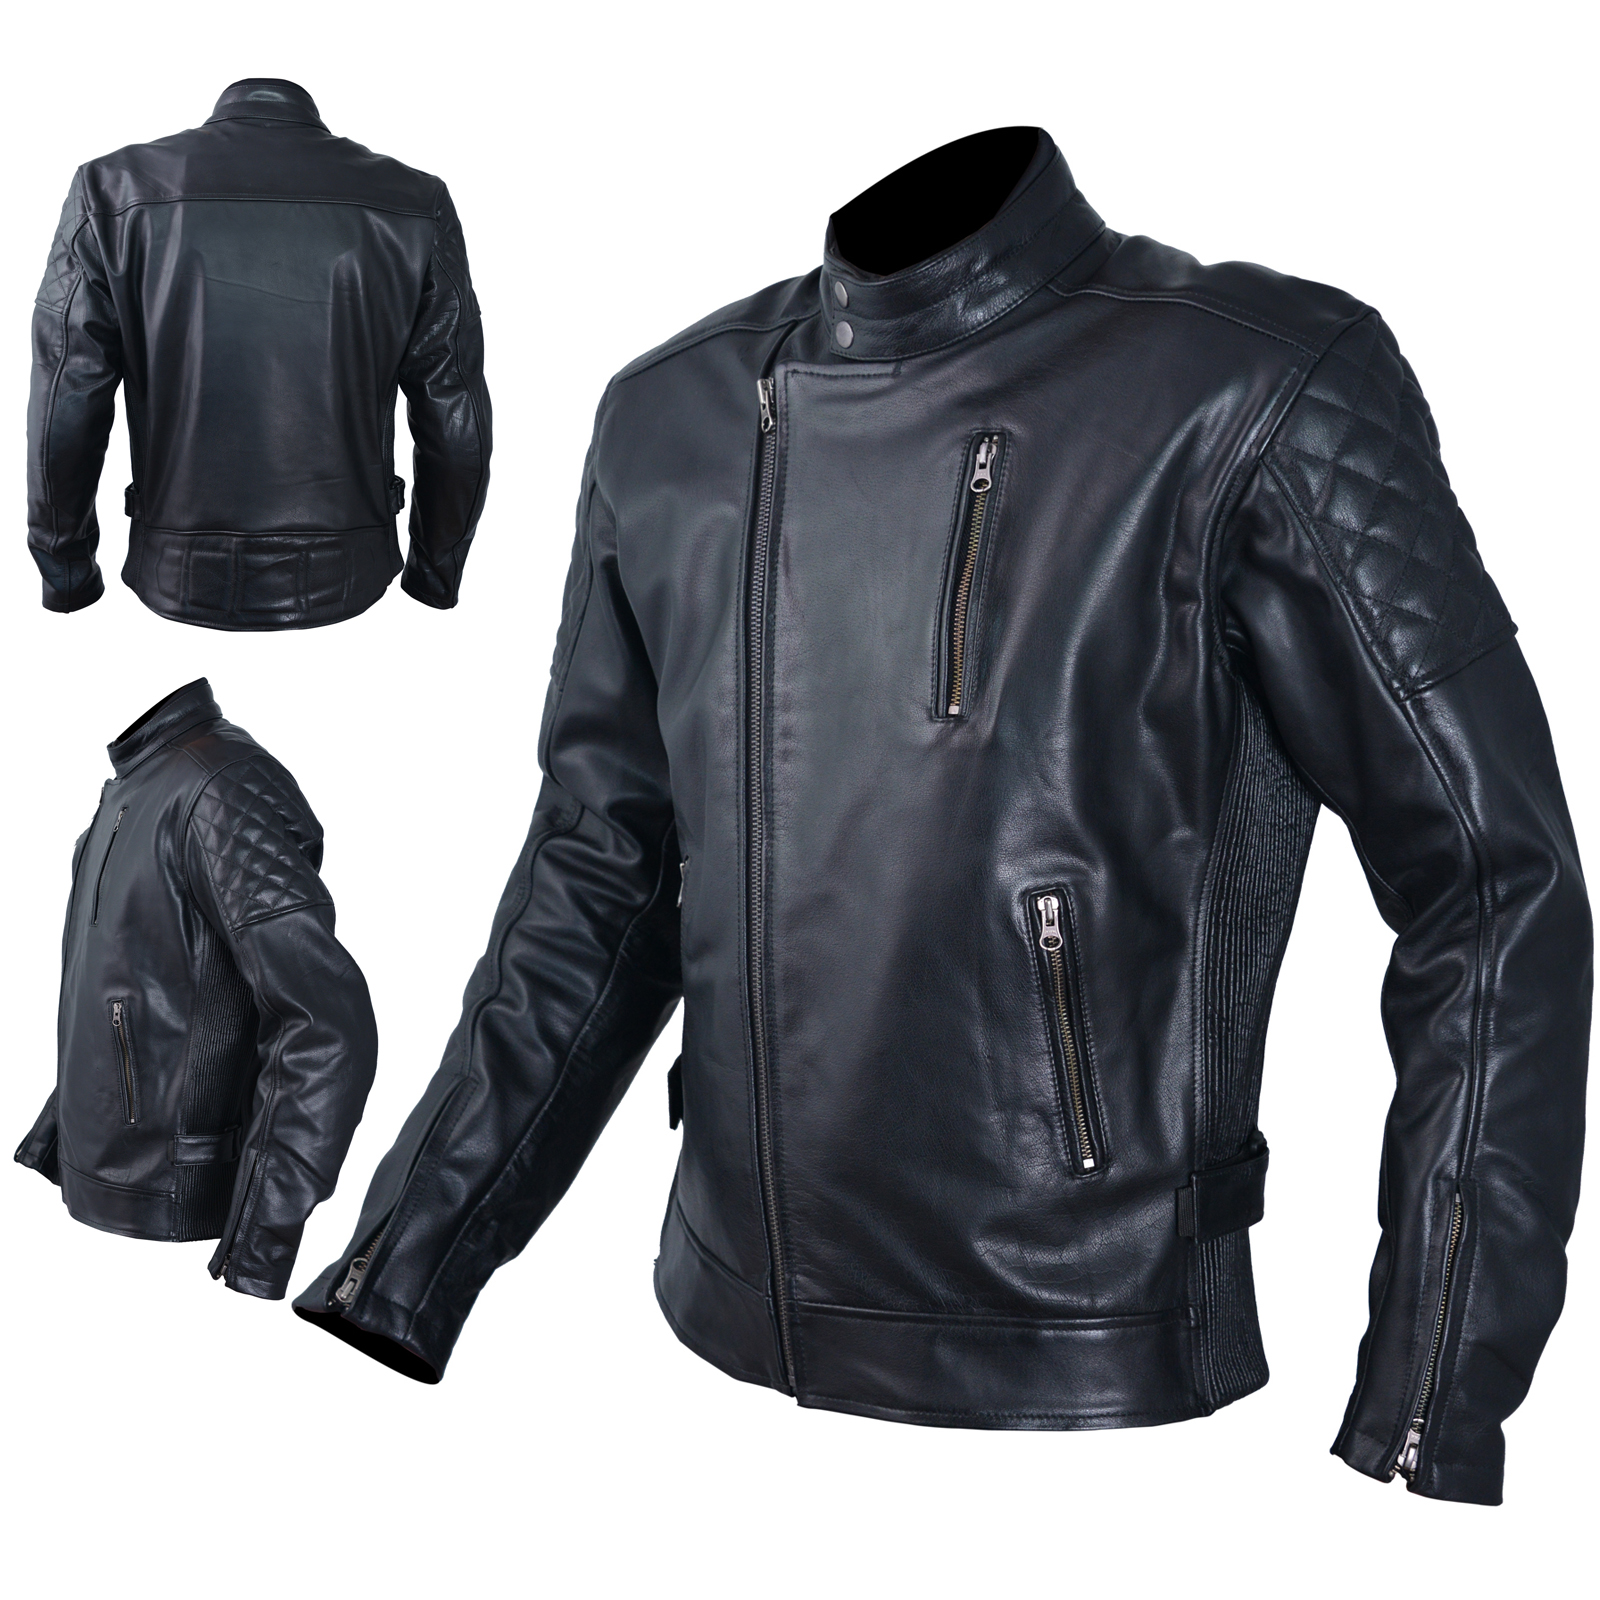 blouson cuir homme moto protections ce veste vintage thermique s ebay. Black Bedroom Furniture Sets. Home Design Ideas